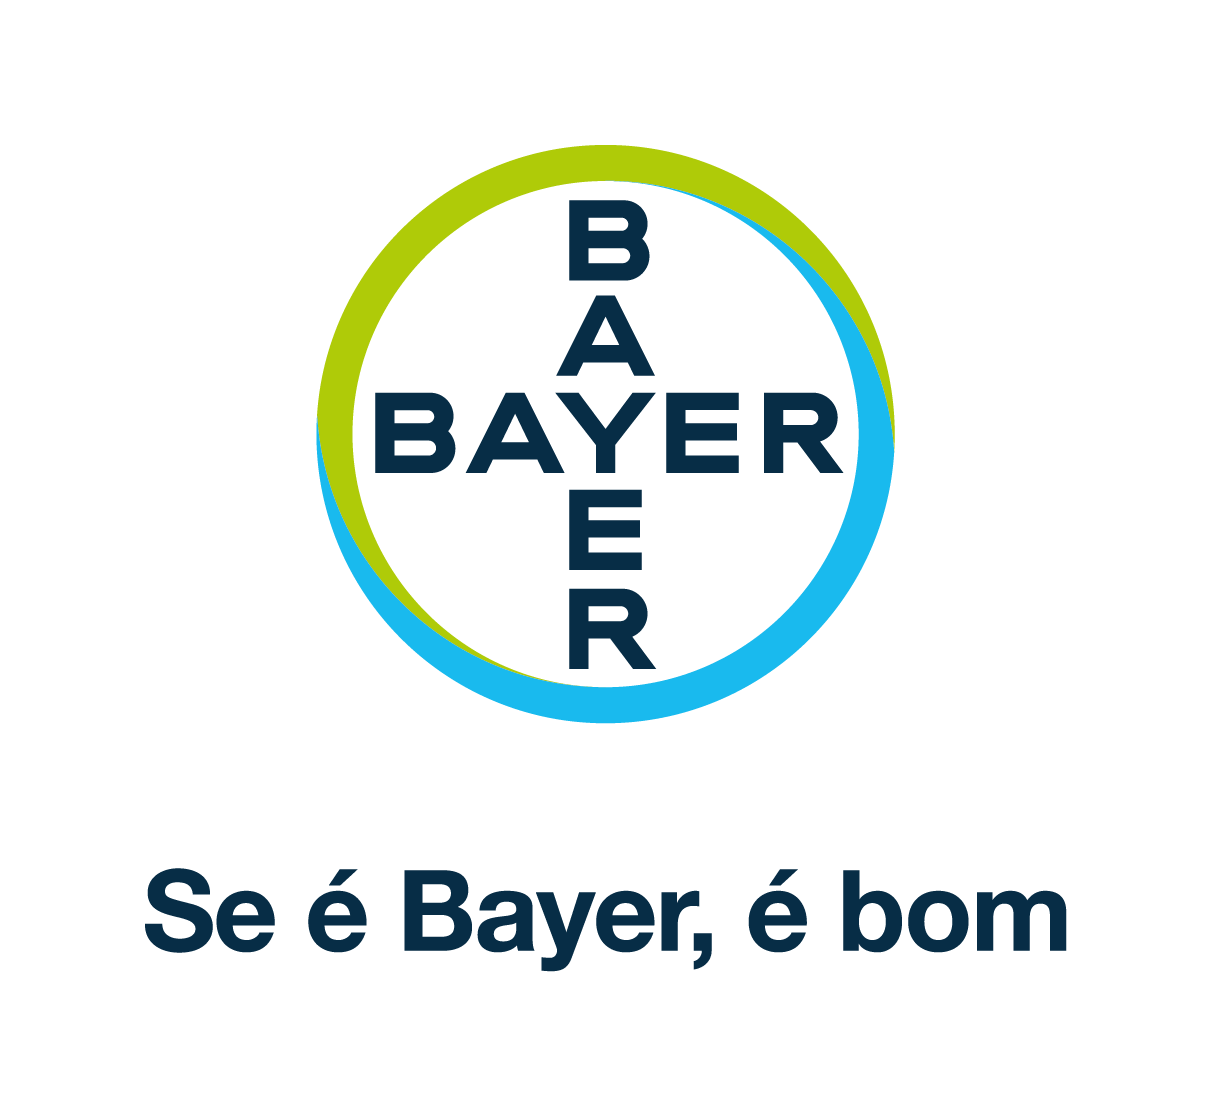 Impulso Bayer